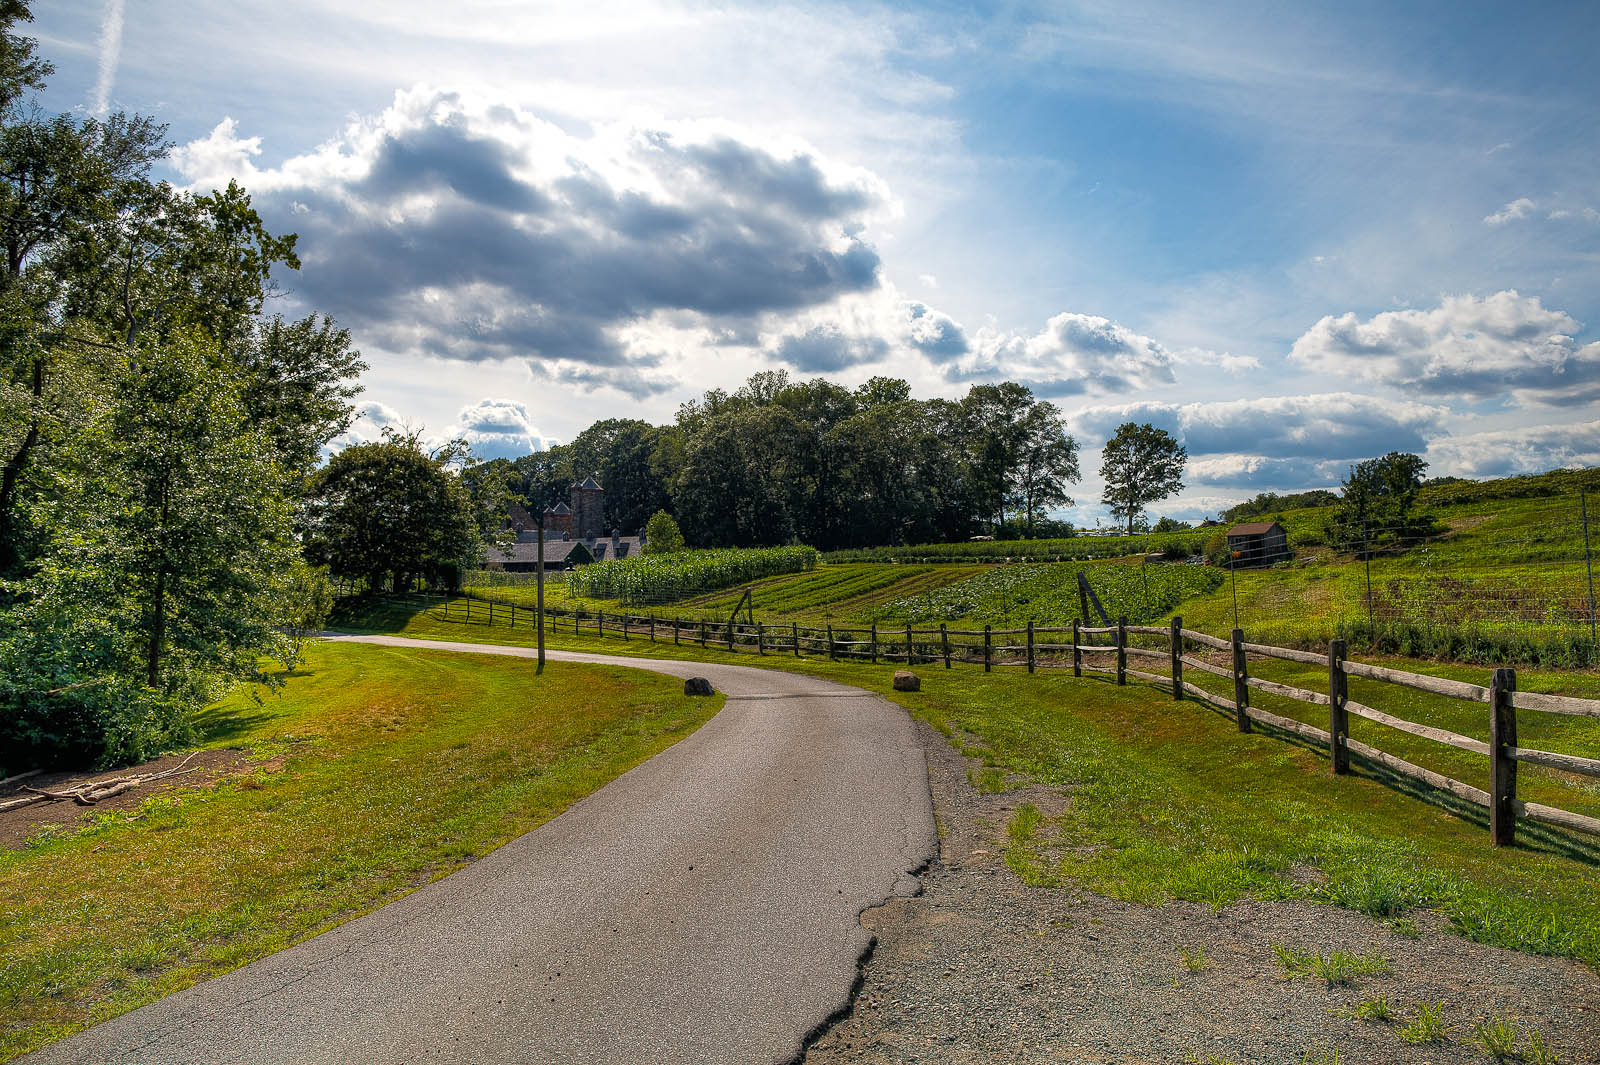 The path to Blue Hill at Stone Barns